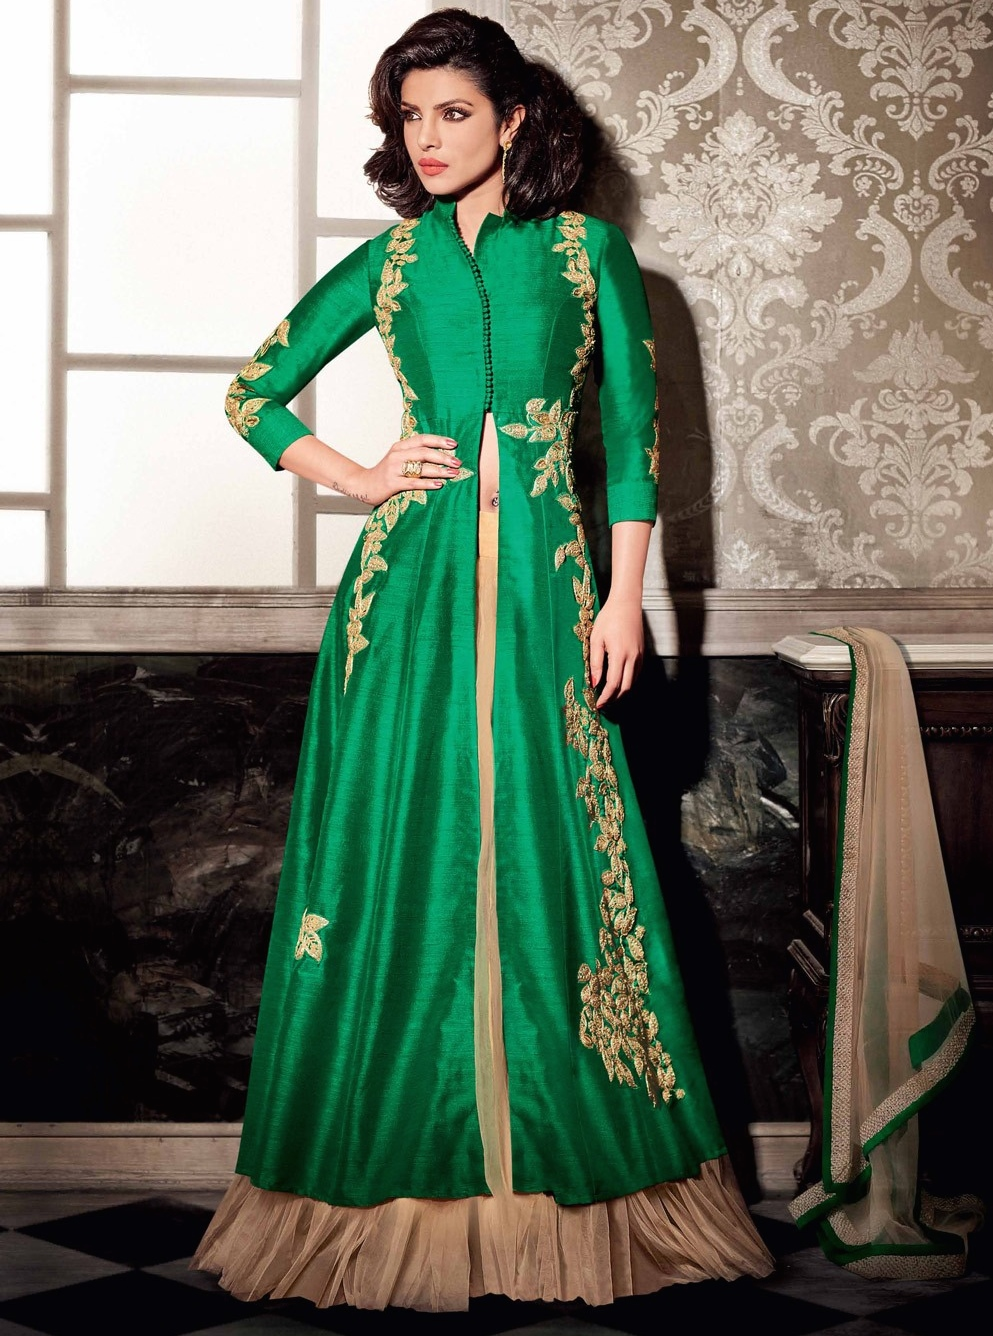 Celebrity designer salwars in usa